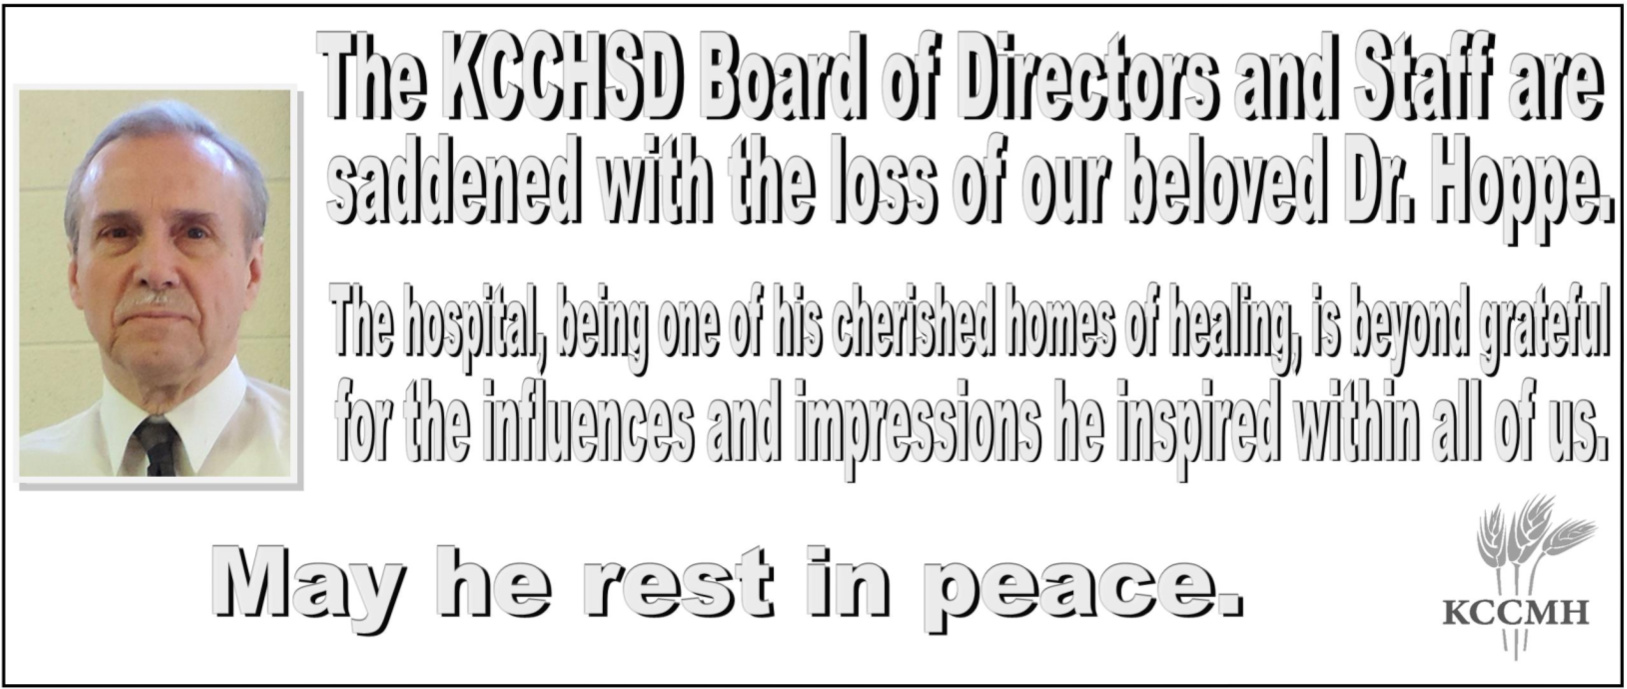 The KCCHSD Board of Directors and Staff grieve the passing of our beloved Dr. Hoppe.